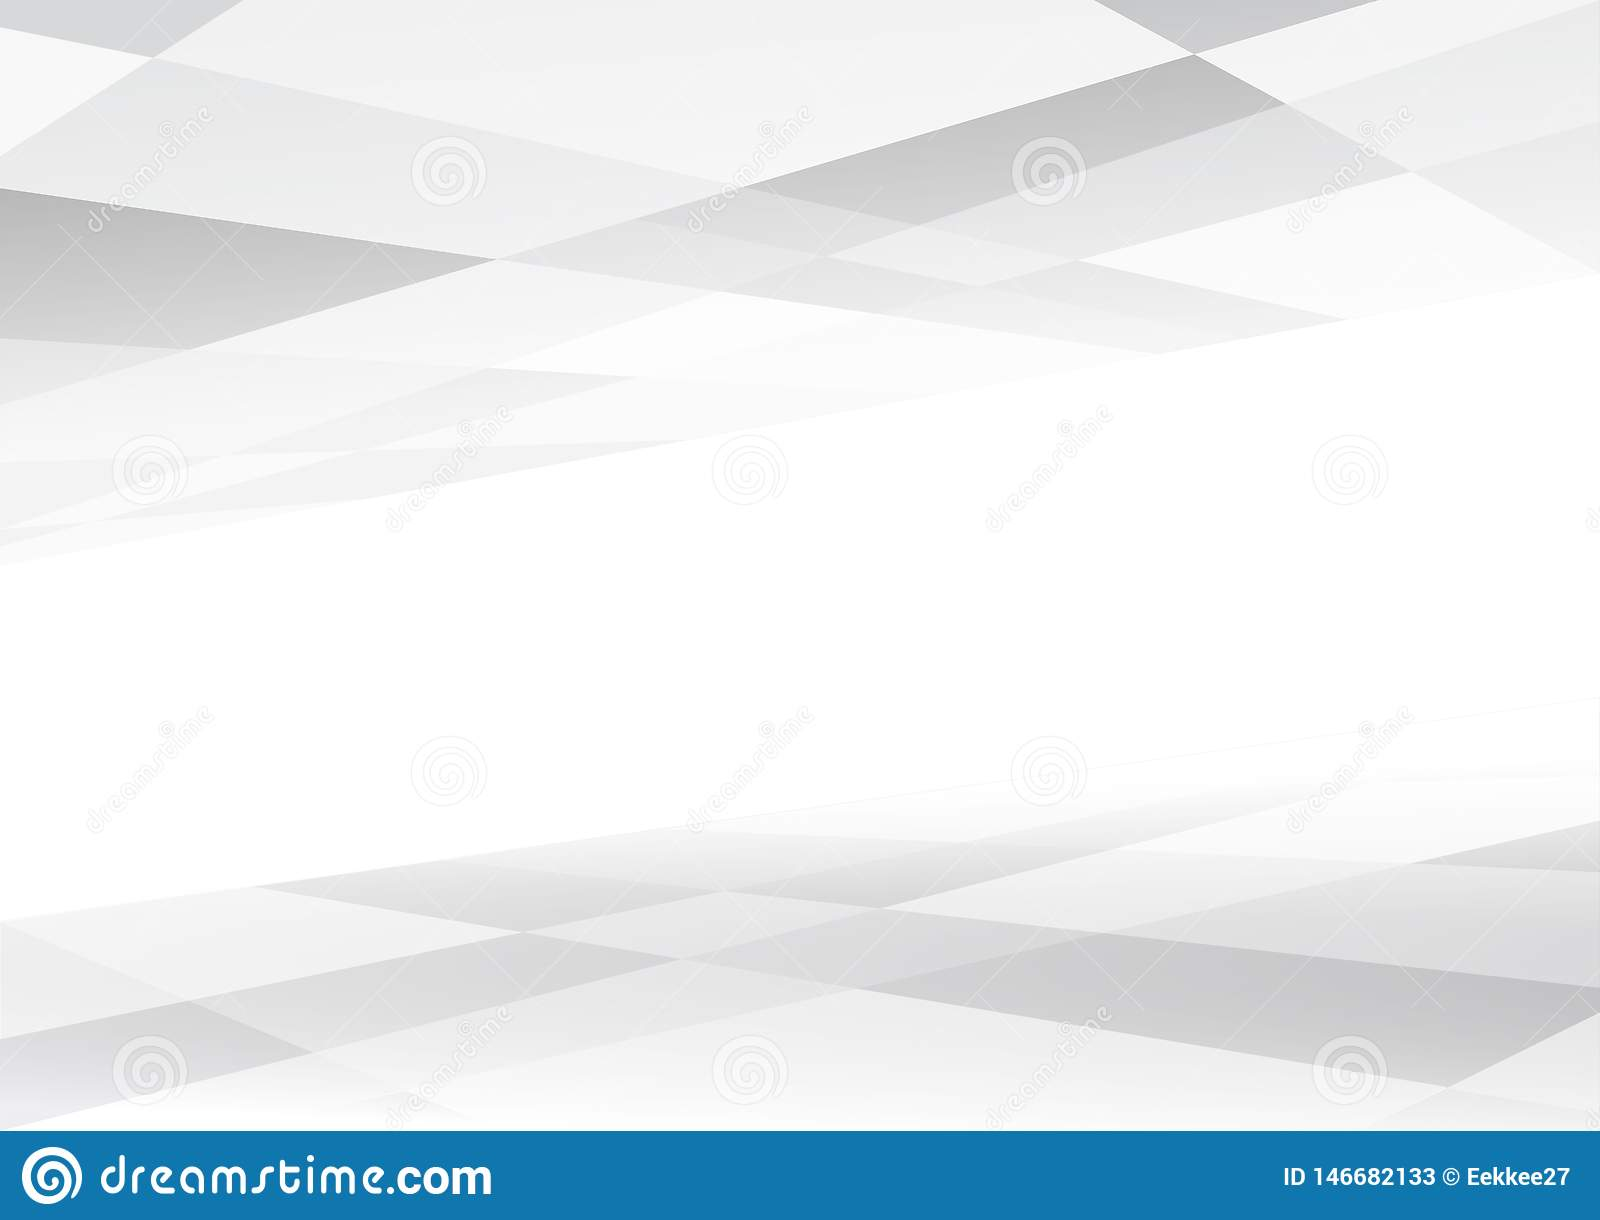 Abstract background design vector Illustration